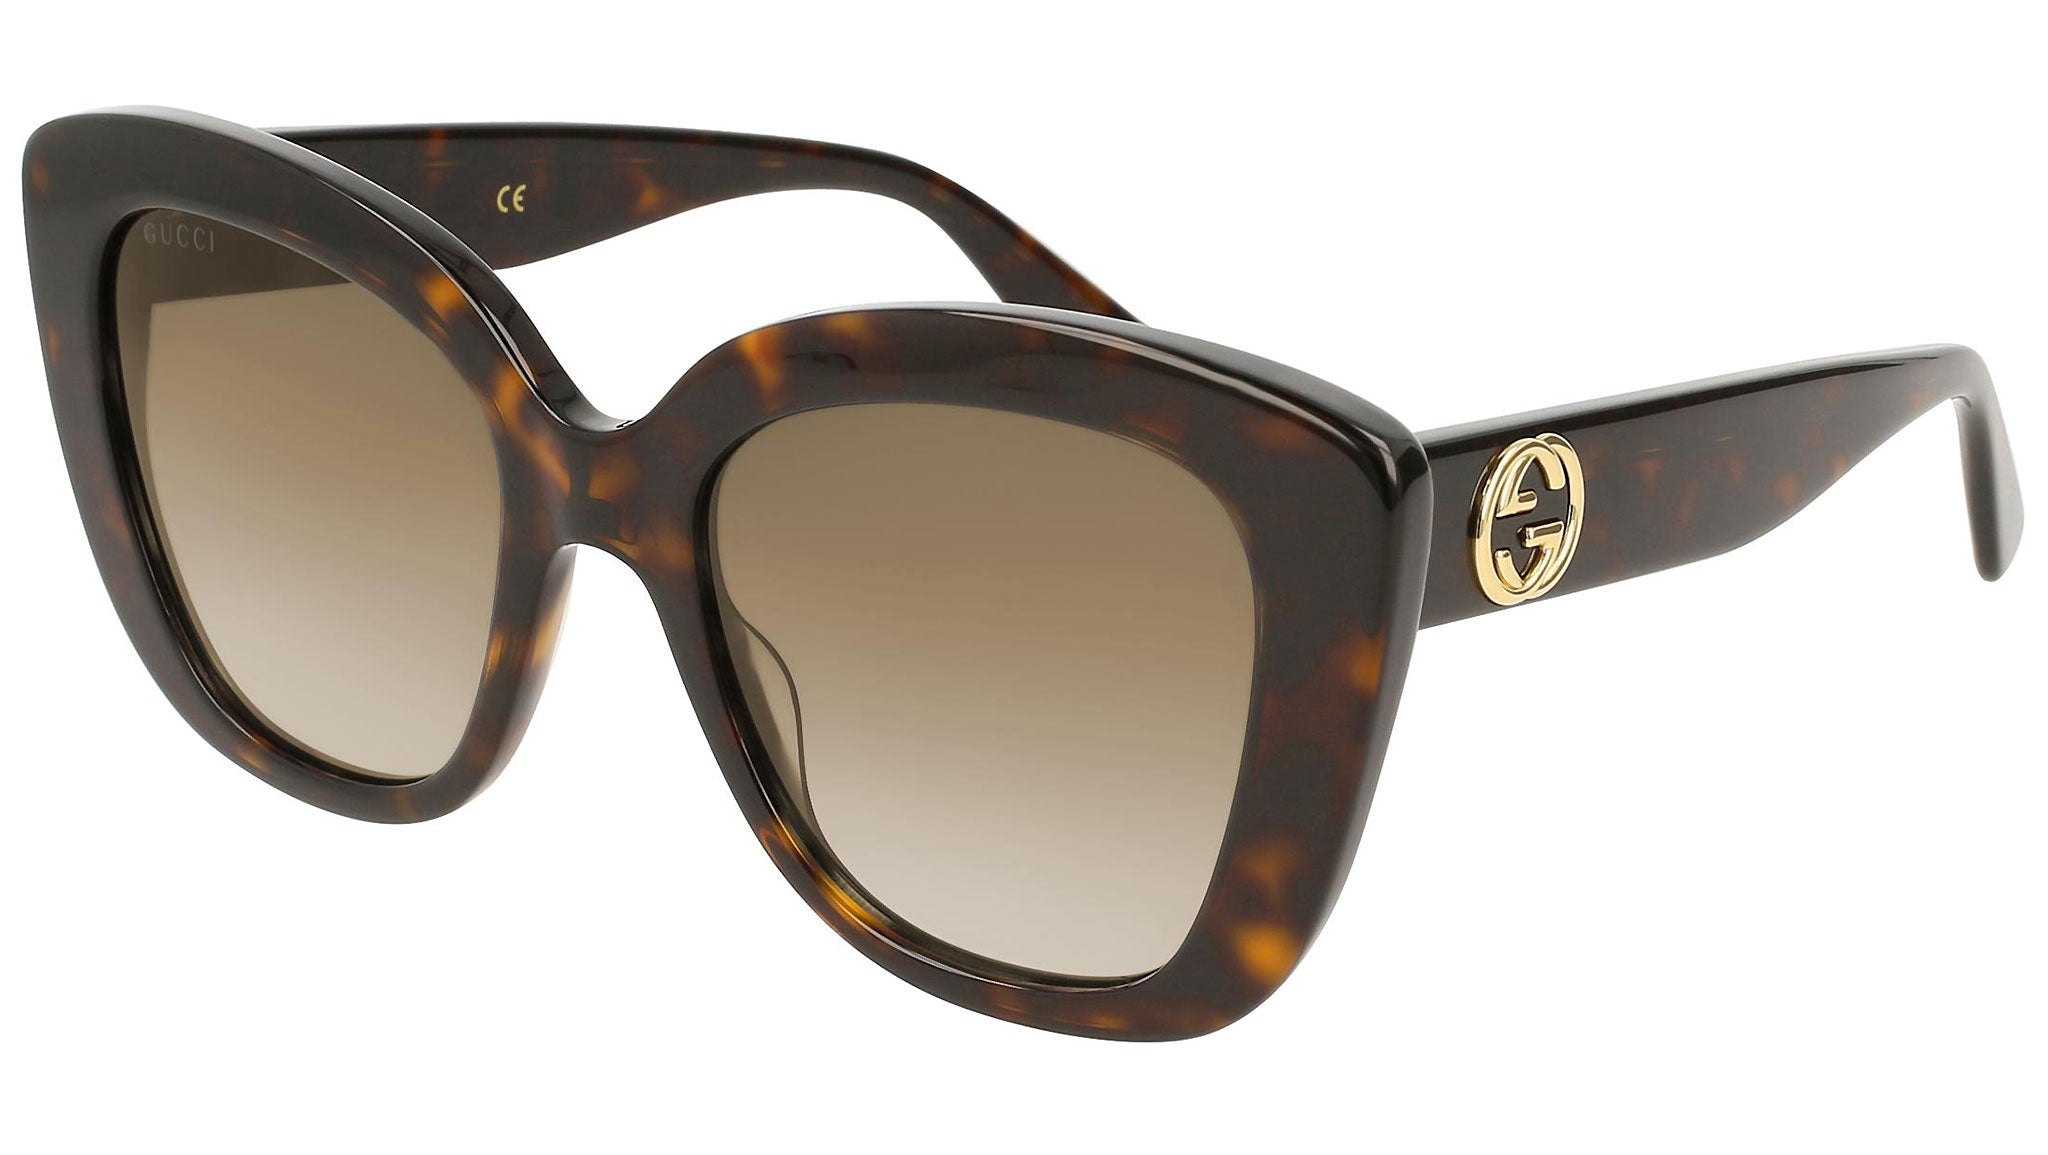 GG0327S dark havana and brown